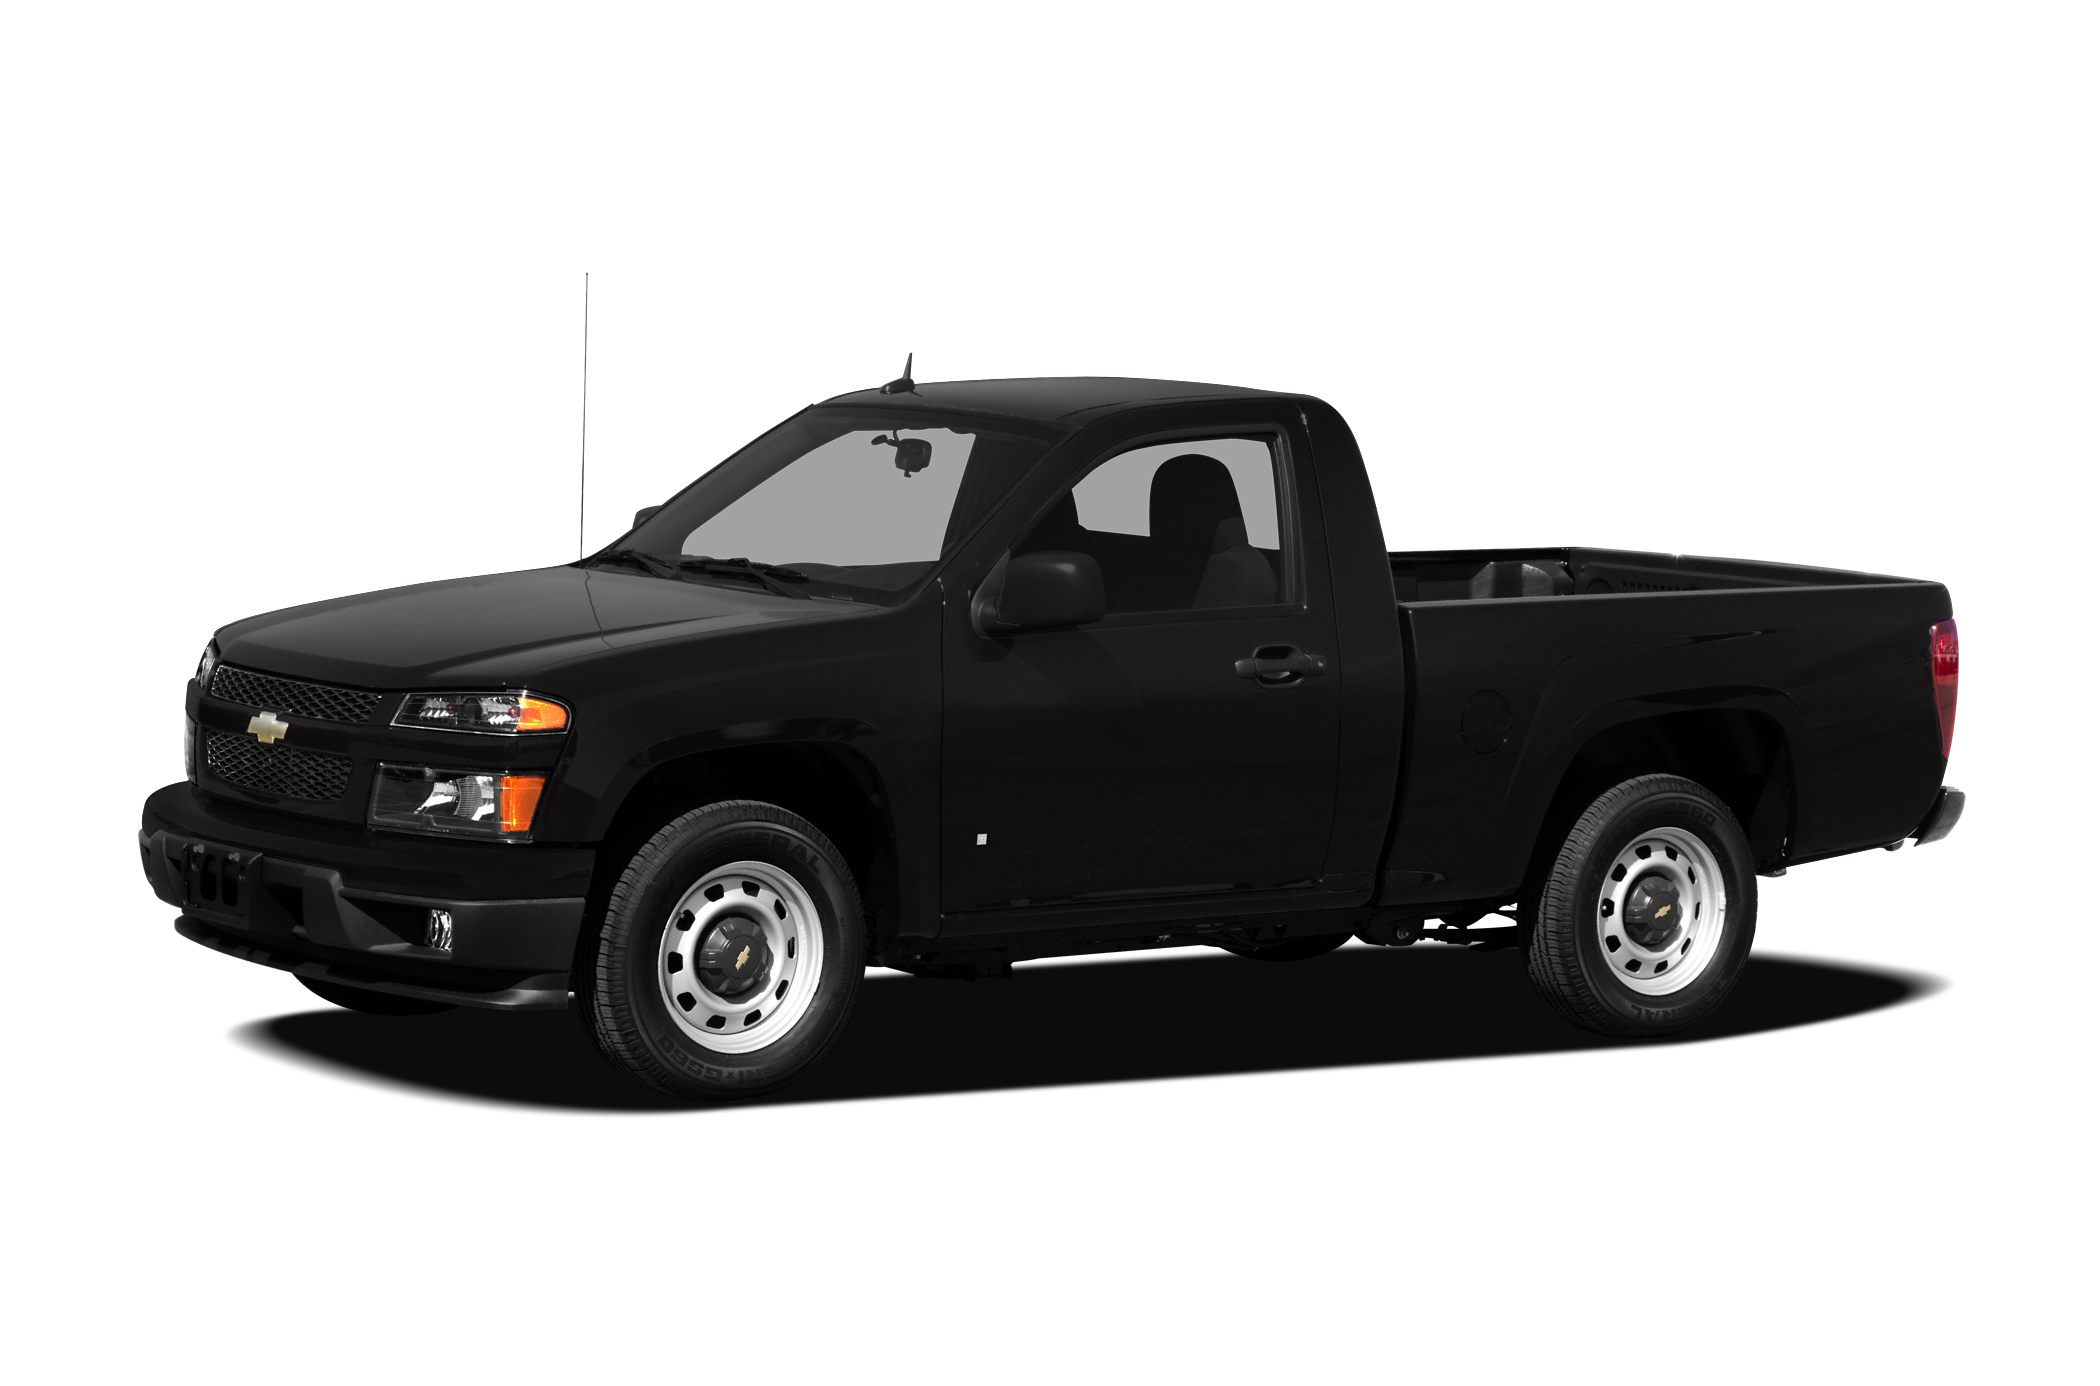 2011 Chevrolet Colorado LT Extended Cab Pickup for sale in Columbus for $0 with 122,054 miles